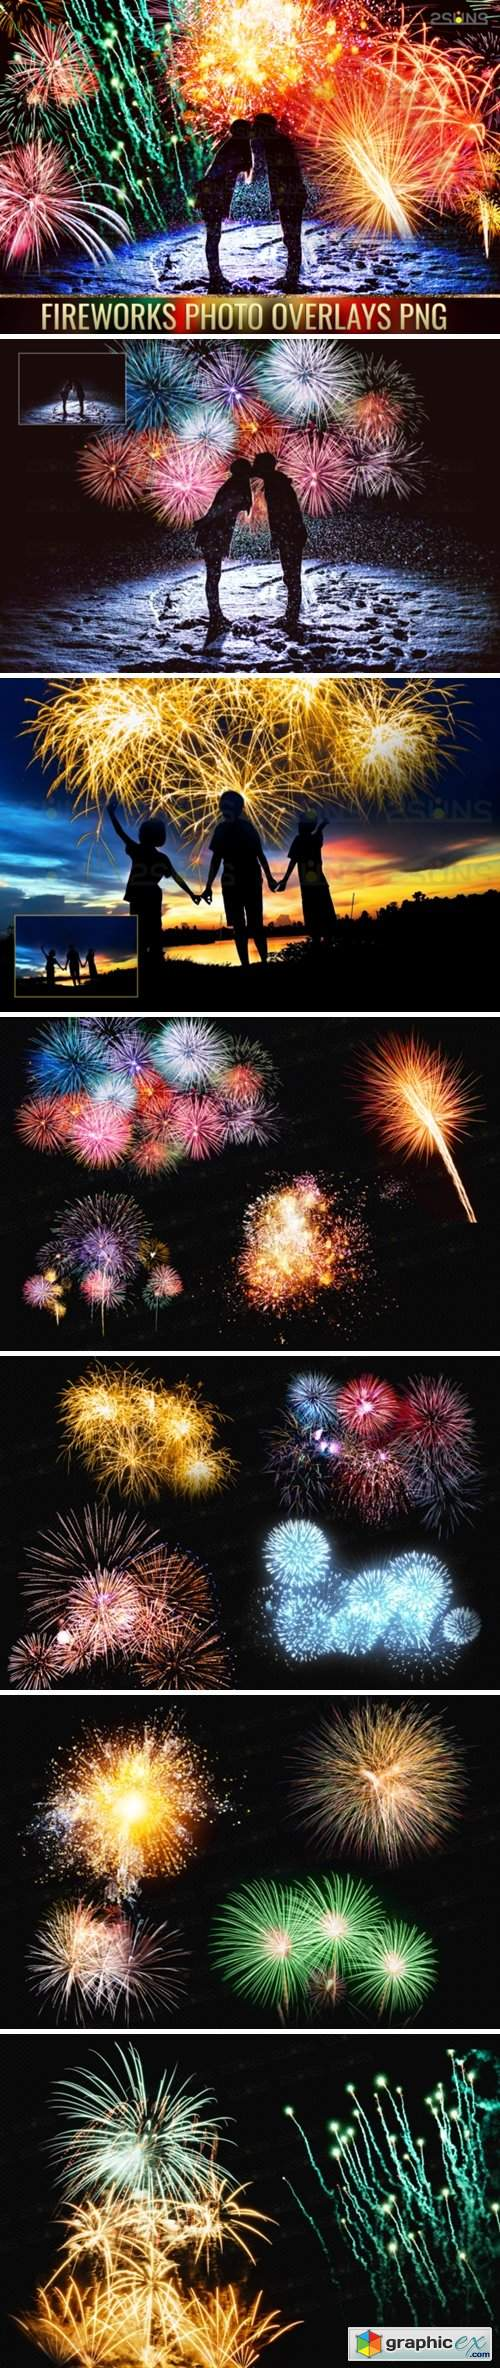 Holiday Fireworks Overlays Png Photoshop